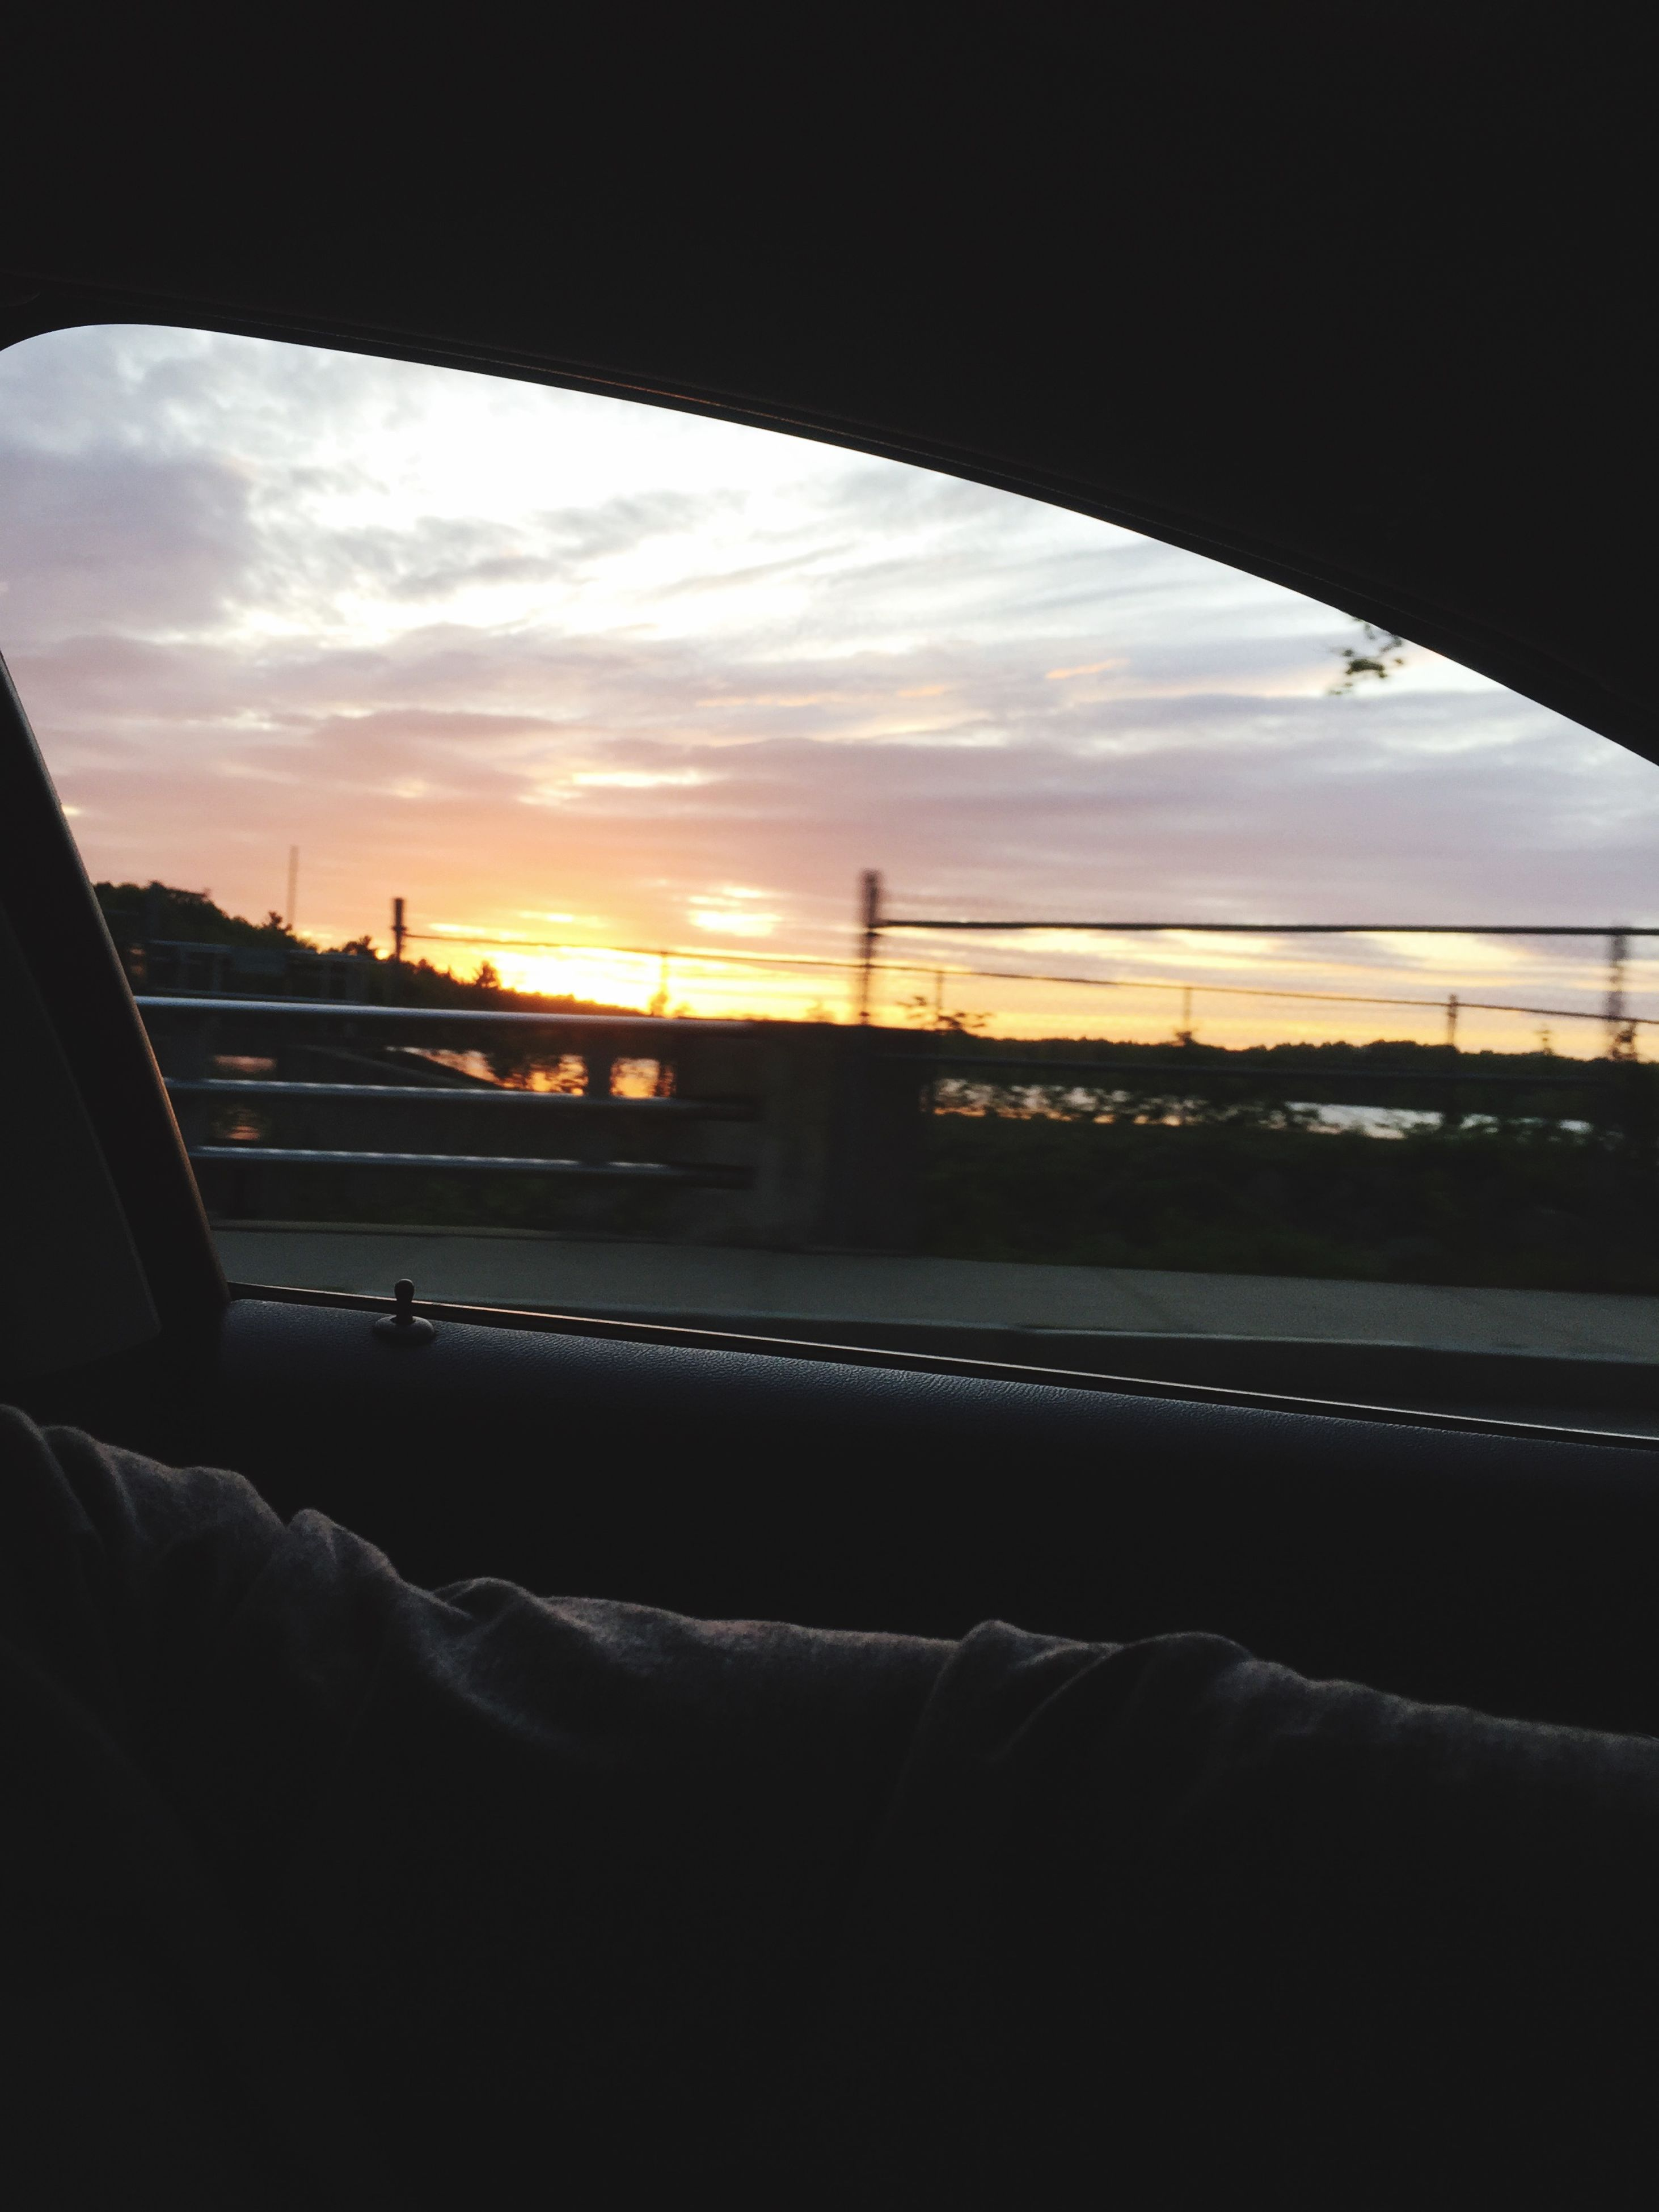 sunset, sky, transportation, cloud - sky, indoors, silhouette, mode of transport, built structure, window, architecture, cloud, vehicle interior, car, orange color, glass - material, land vehicle, transparent, reflection, travel, no people